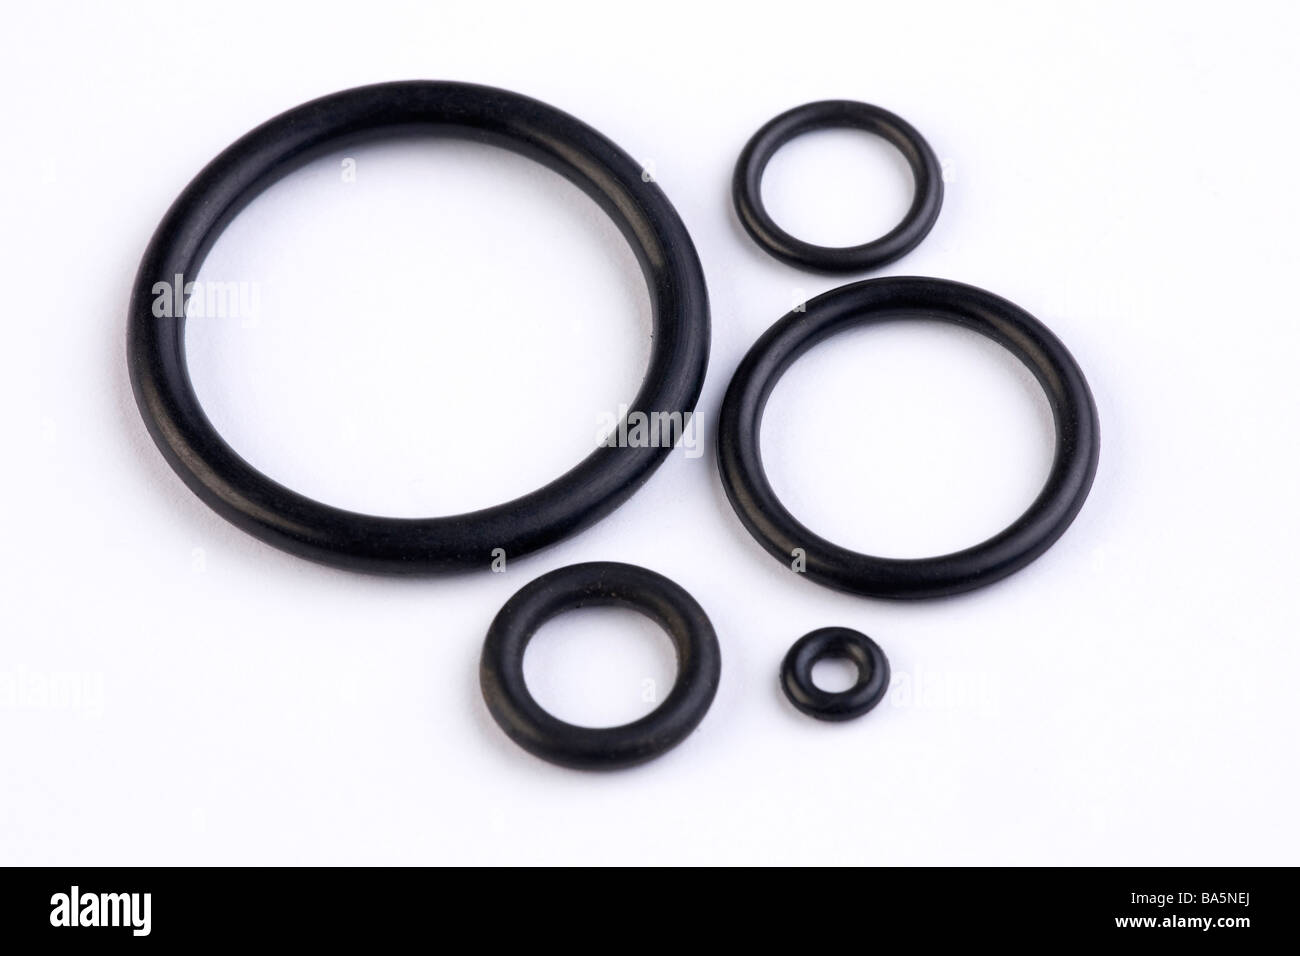 rubber O-rings Stock Photo: 23483562 - Alamy